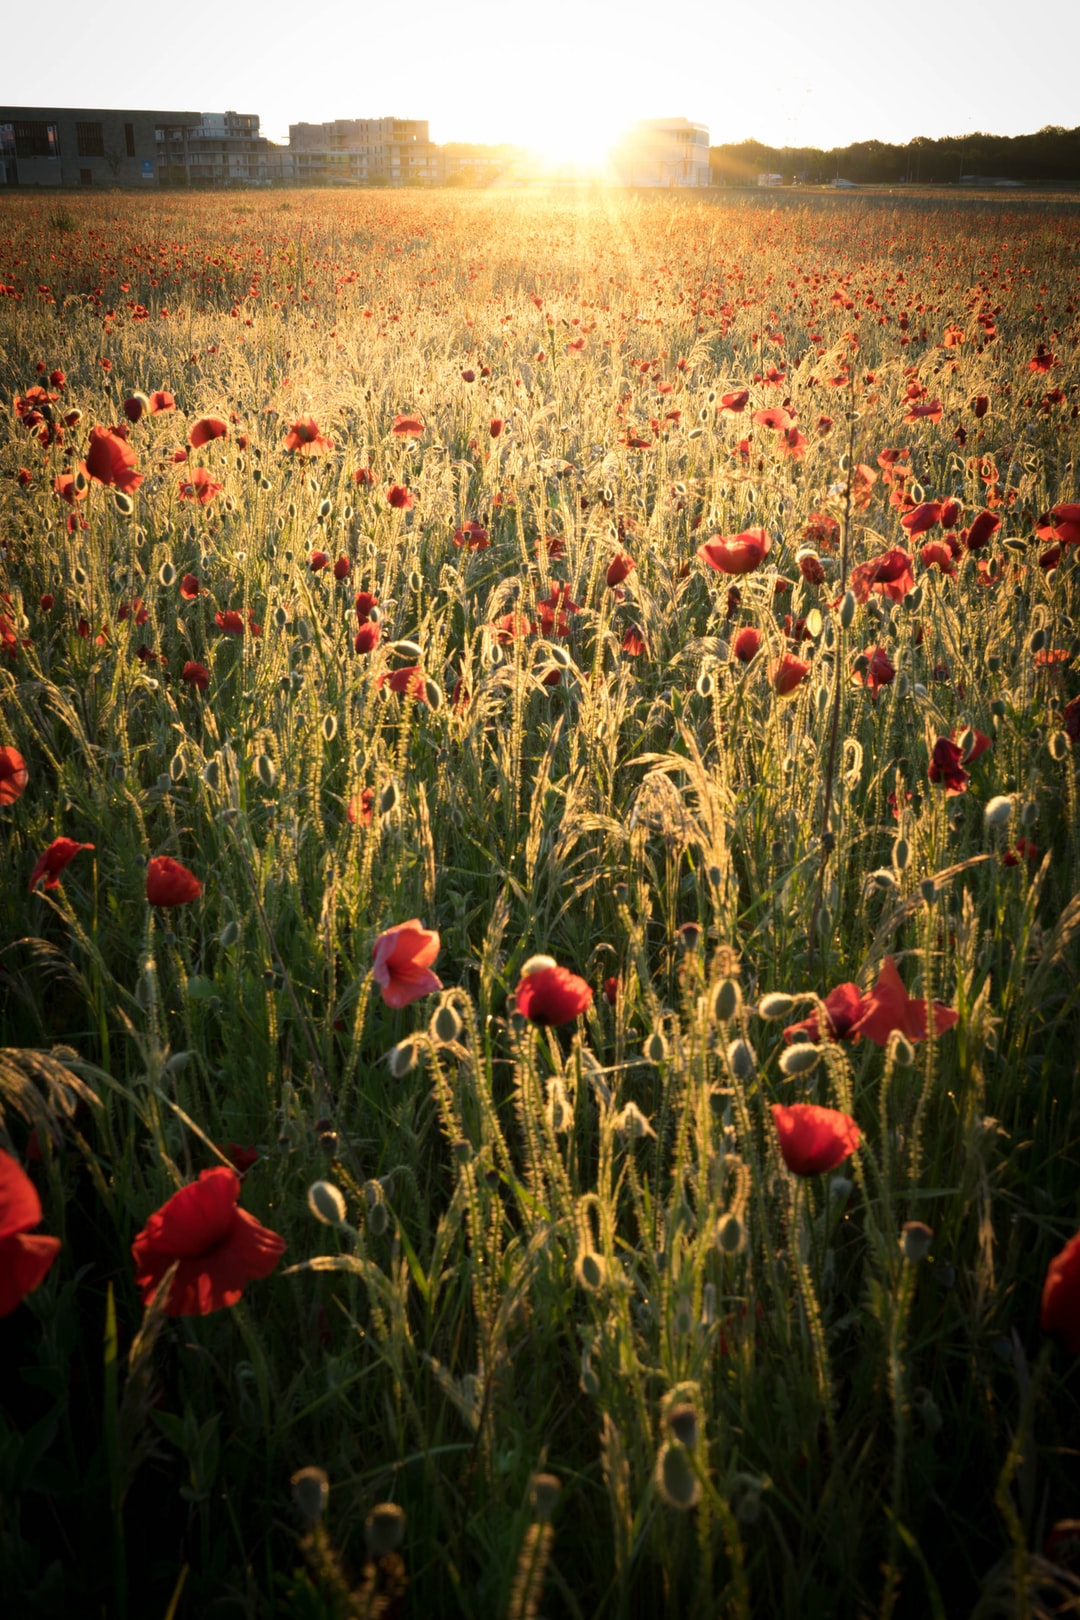 waking up in a red field